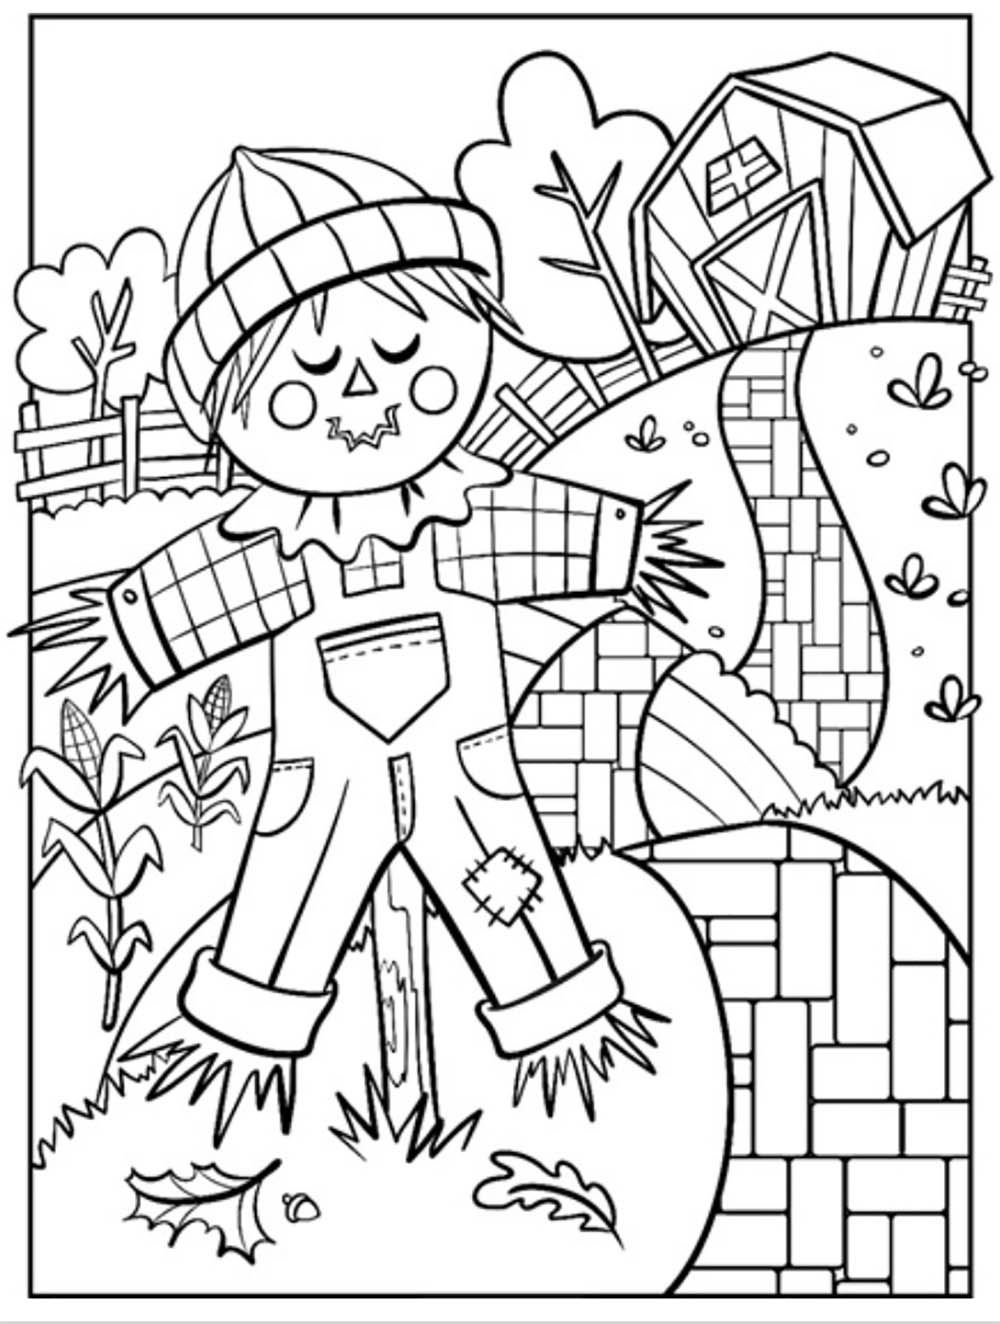 Coloring Books You Can Download For Free Right Now Free Coloring Pages Thanksgiving Coloring Pages Coloring Pages